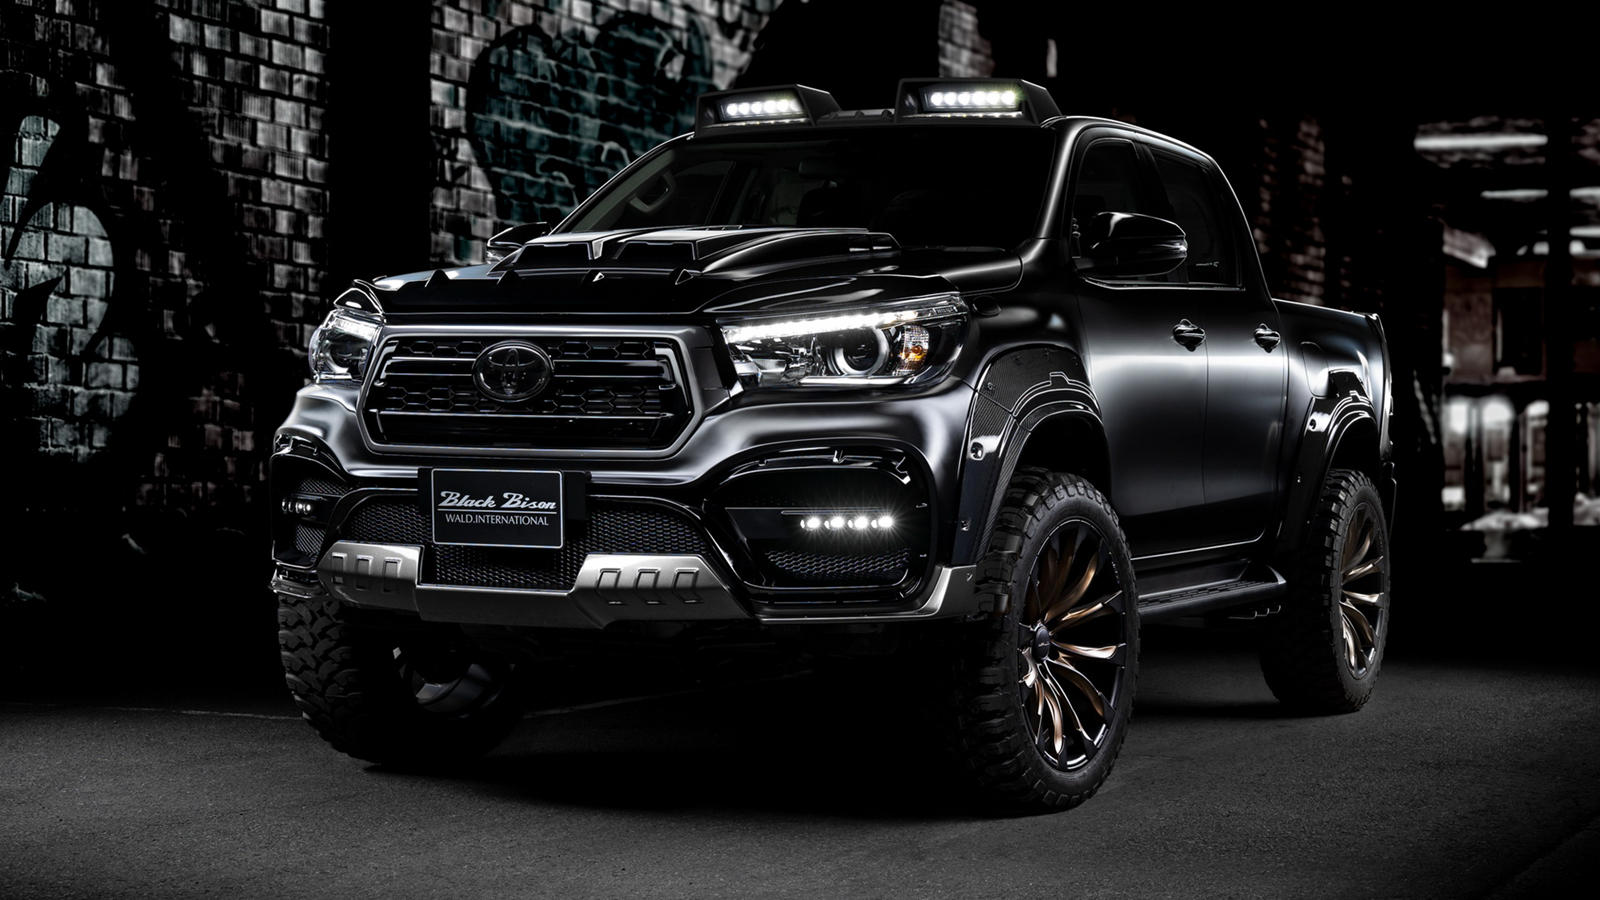 Black Bison Toyota Is The Ford Ranger's Worst Nightmare - CarBuzz